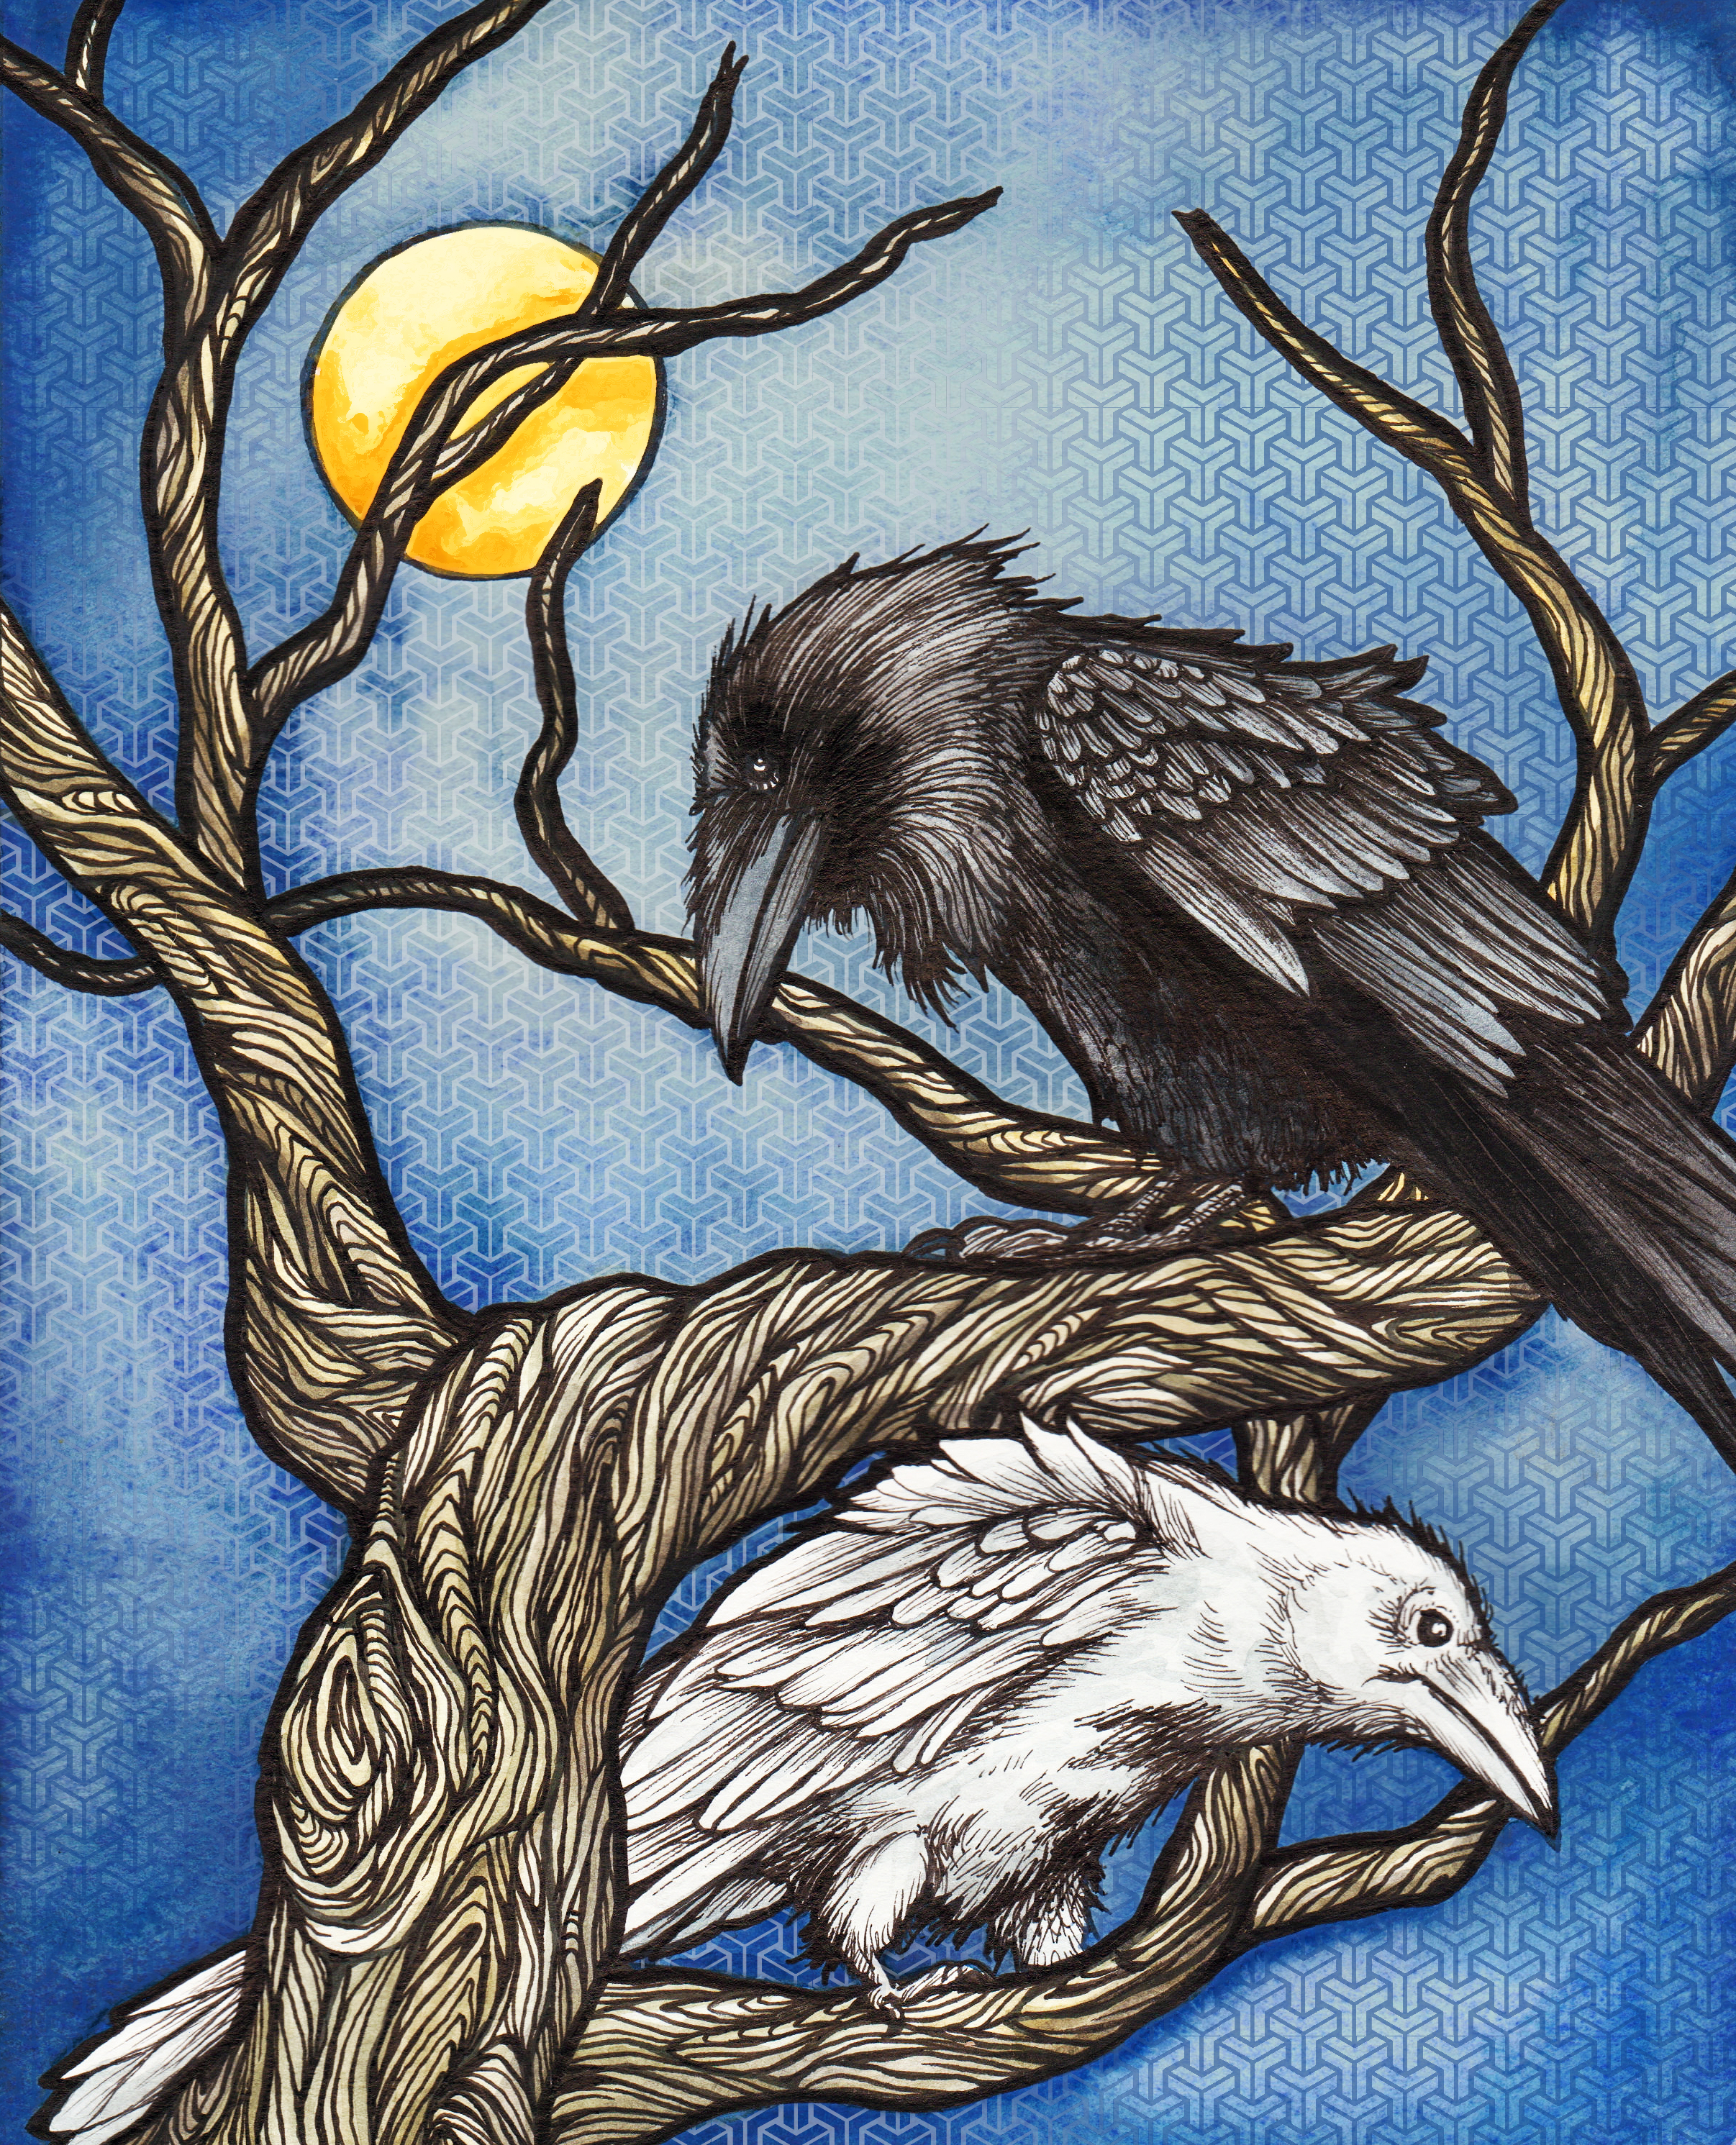 Twa Corbies (Two Crows) illustration by Cat Paschal Dolch